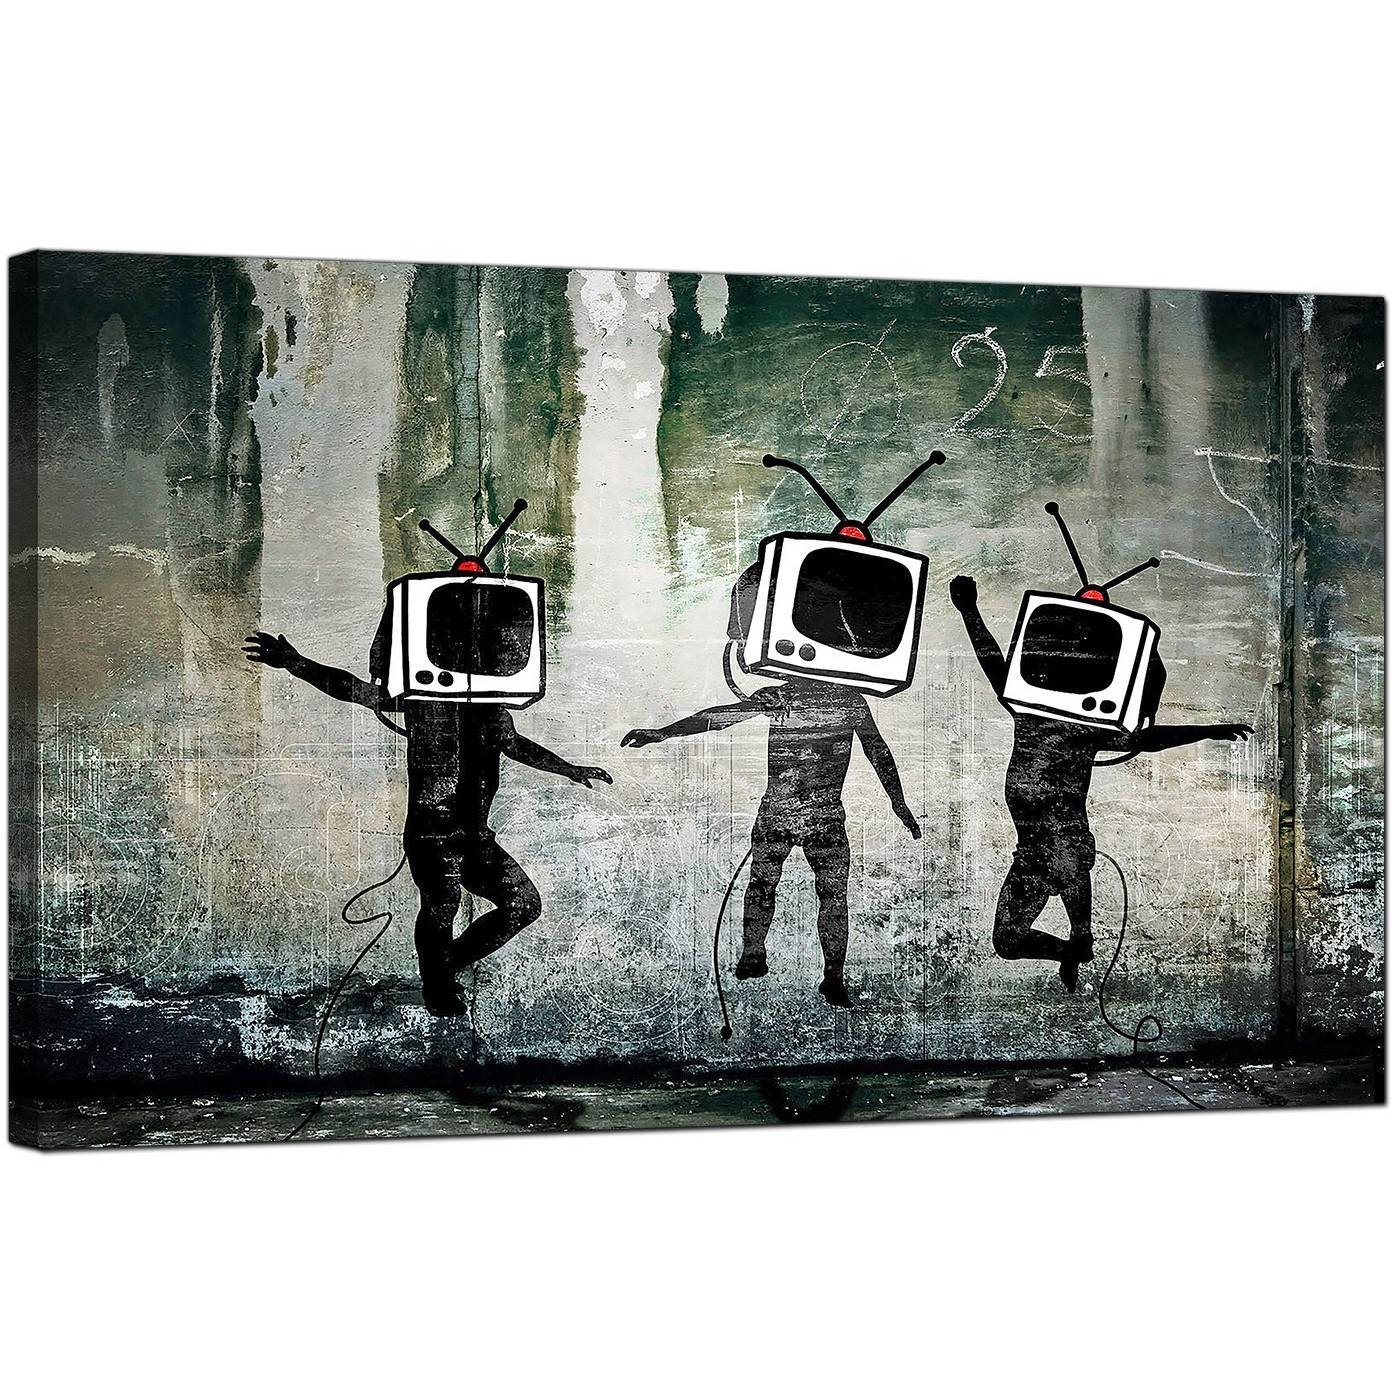 Banksy Canvas Prints – Tv Heads Intended For Most Recent Banksy Canvas Wall Art (View 4 of 20)